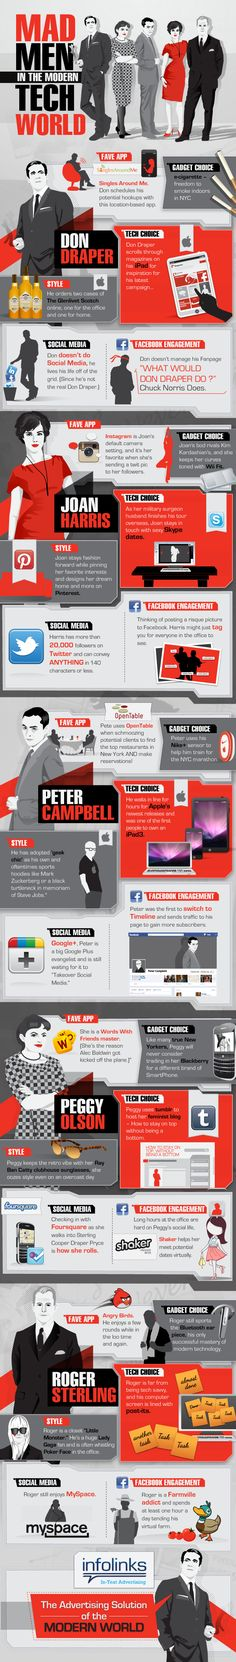 Mad Men in today's world of gadgets